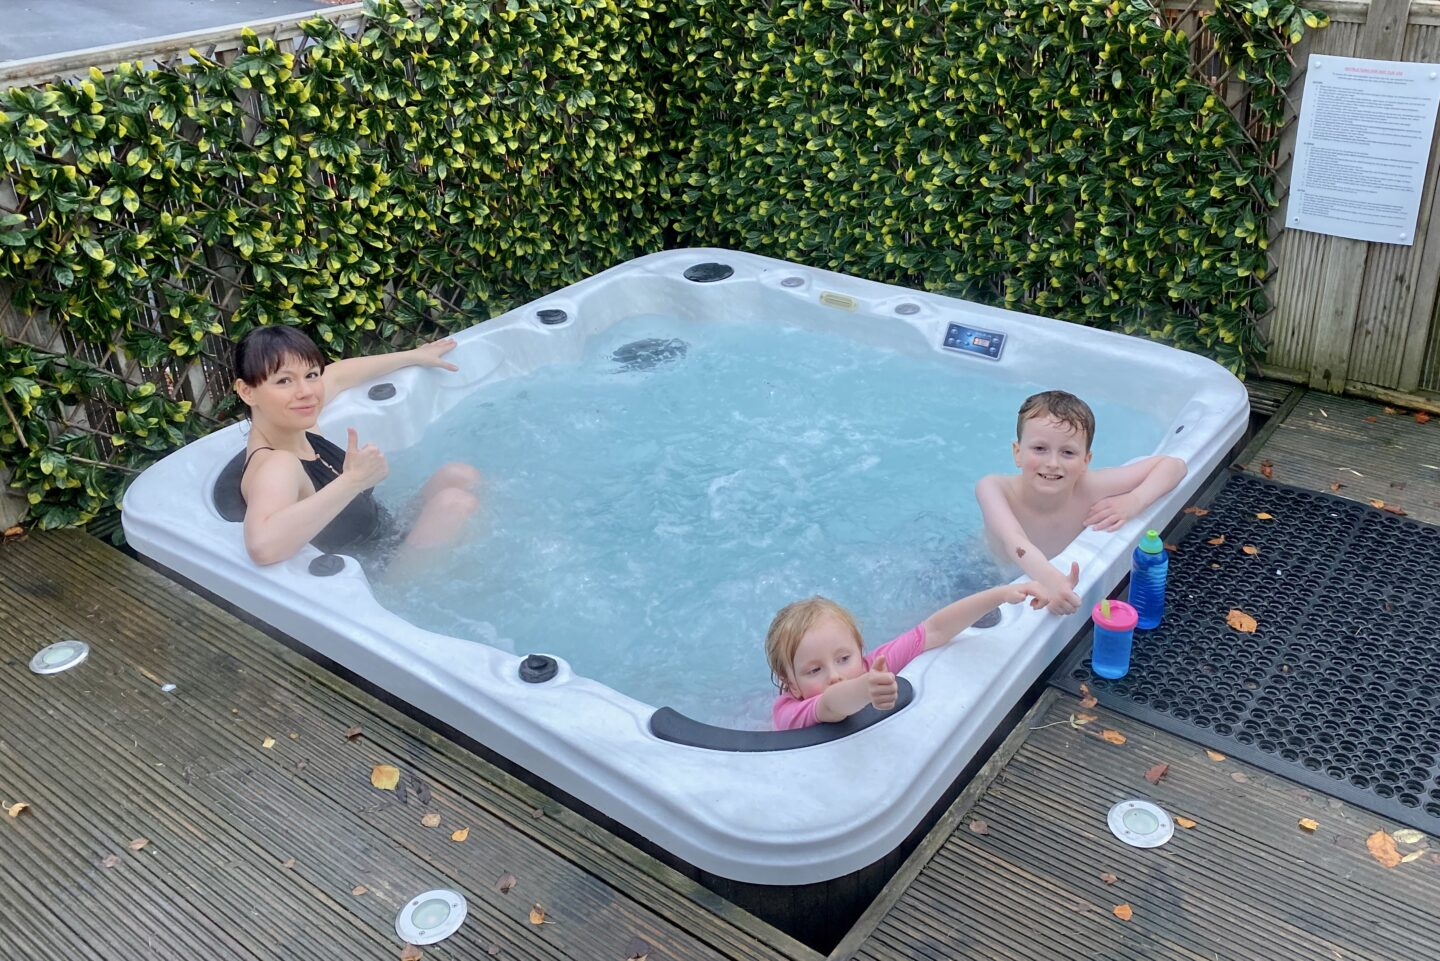 Woman and two children in the hot tub